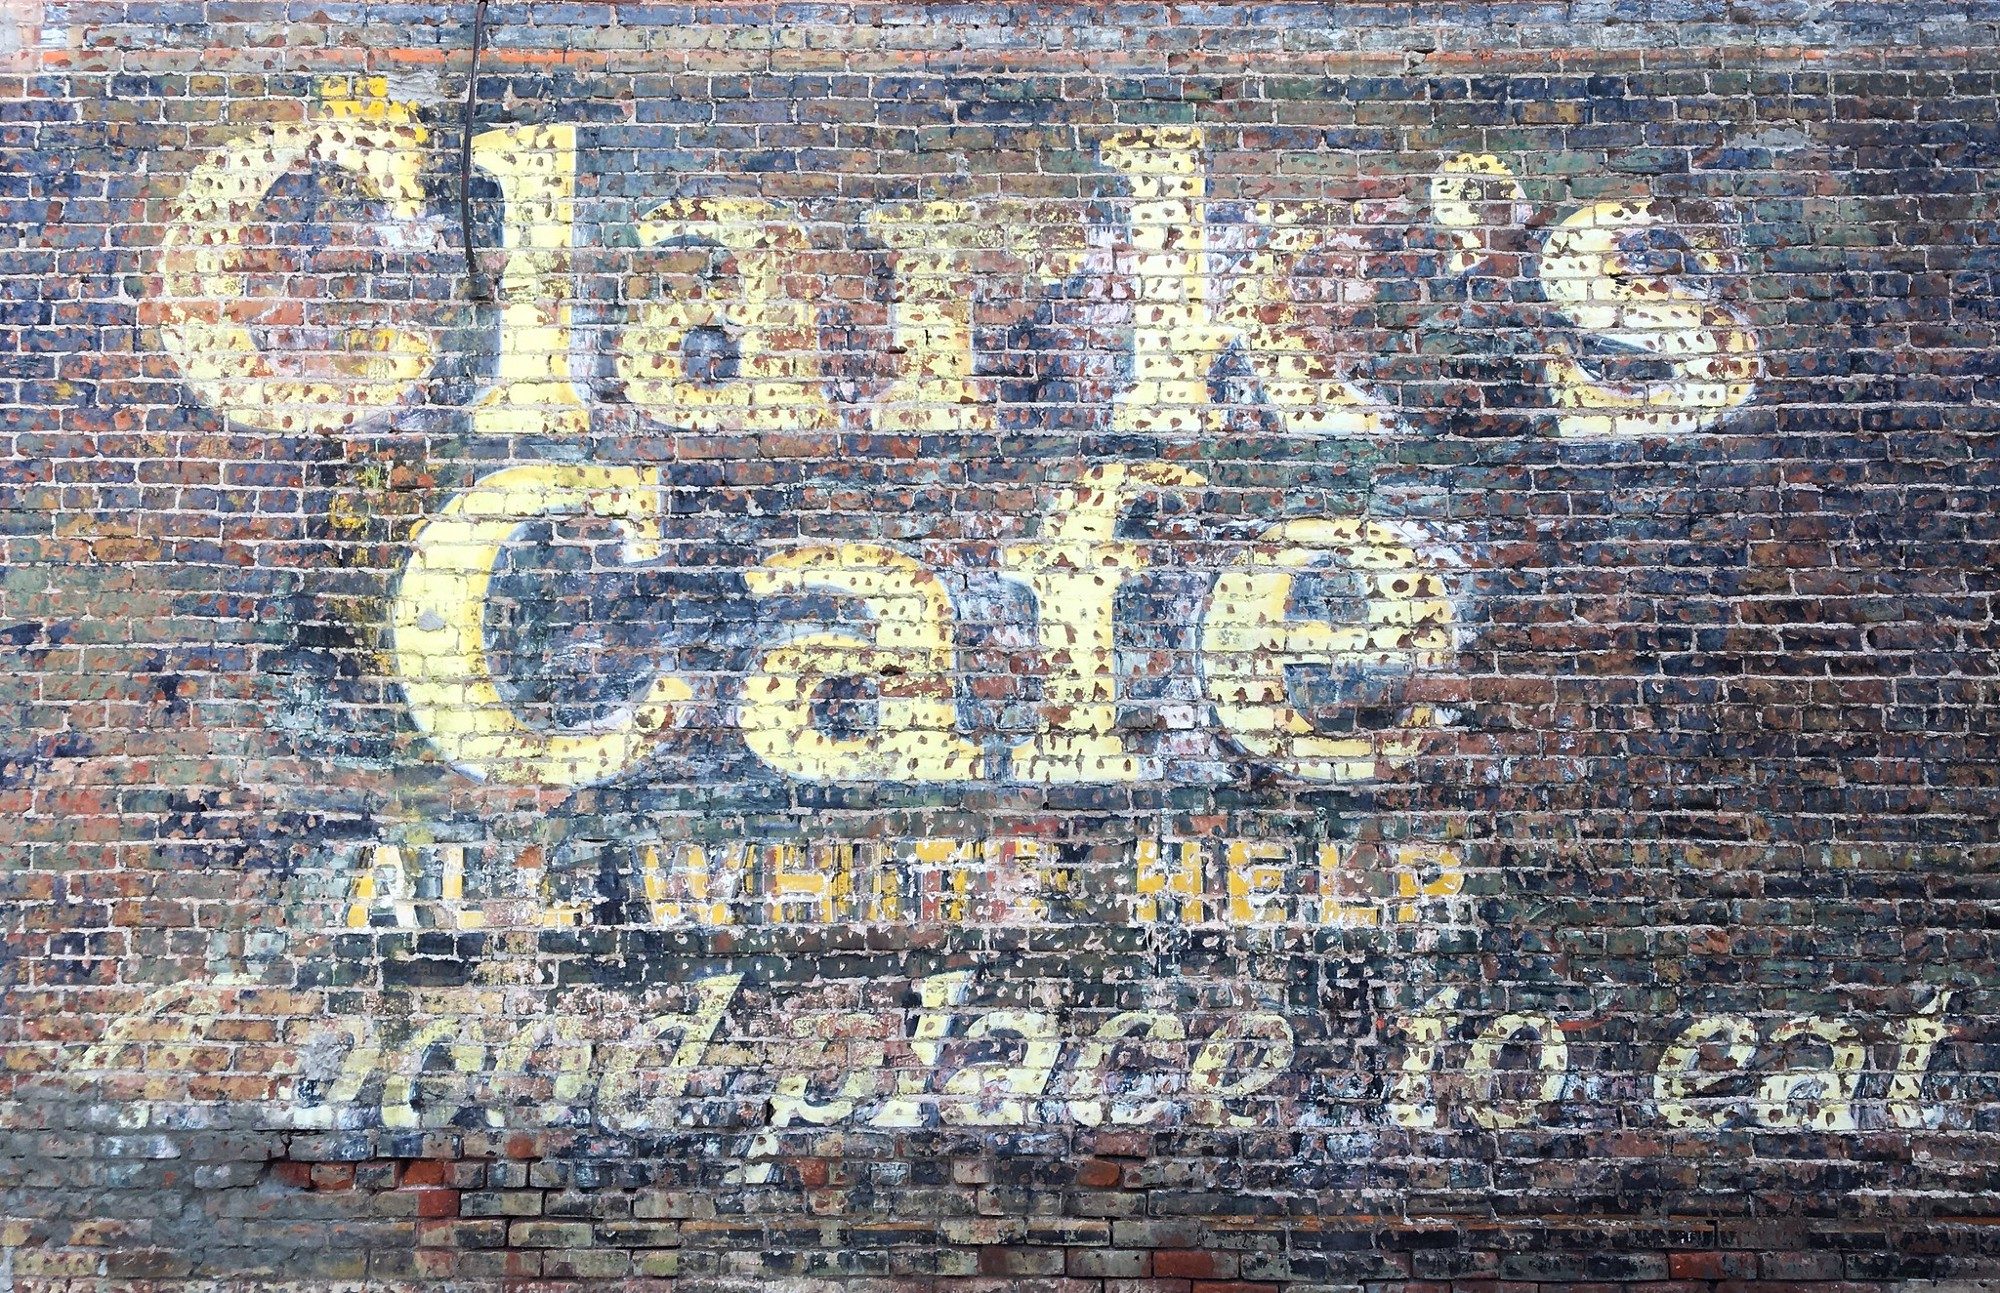 Clarke's cafe painted on brick wall, justice, culture, race